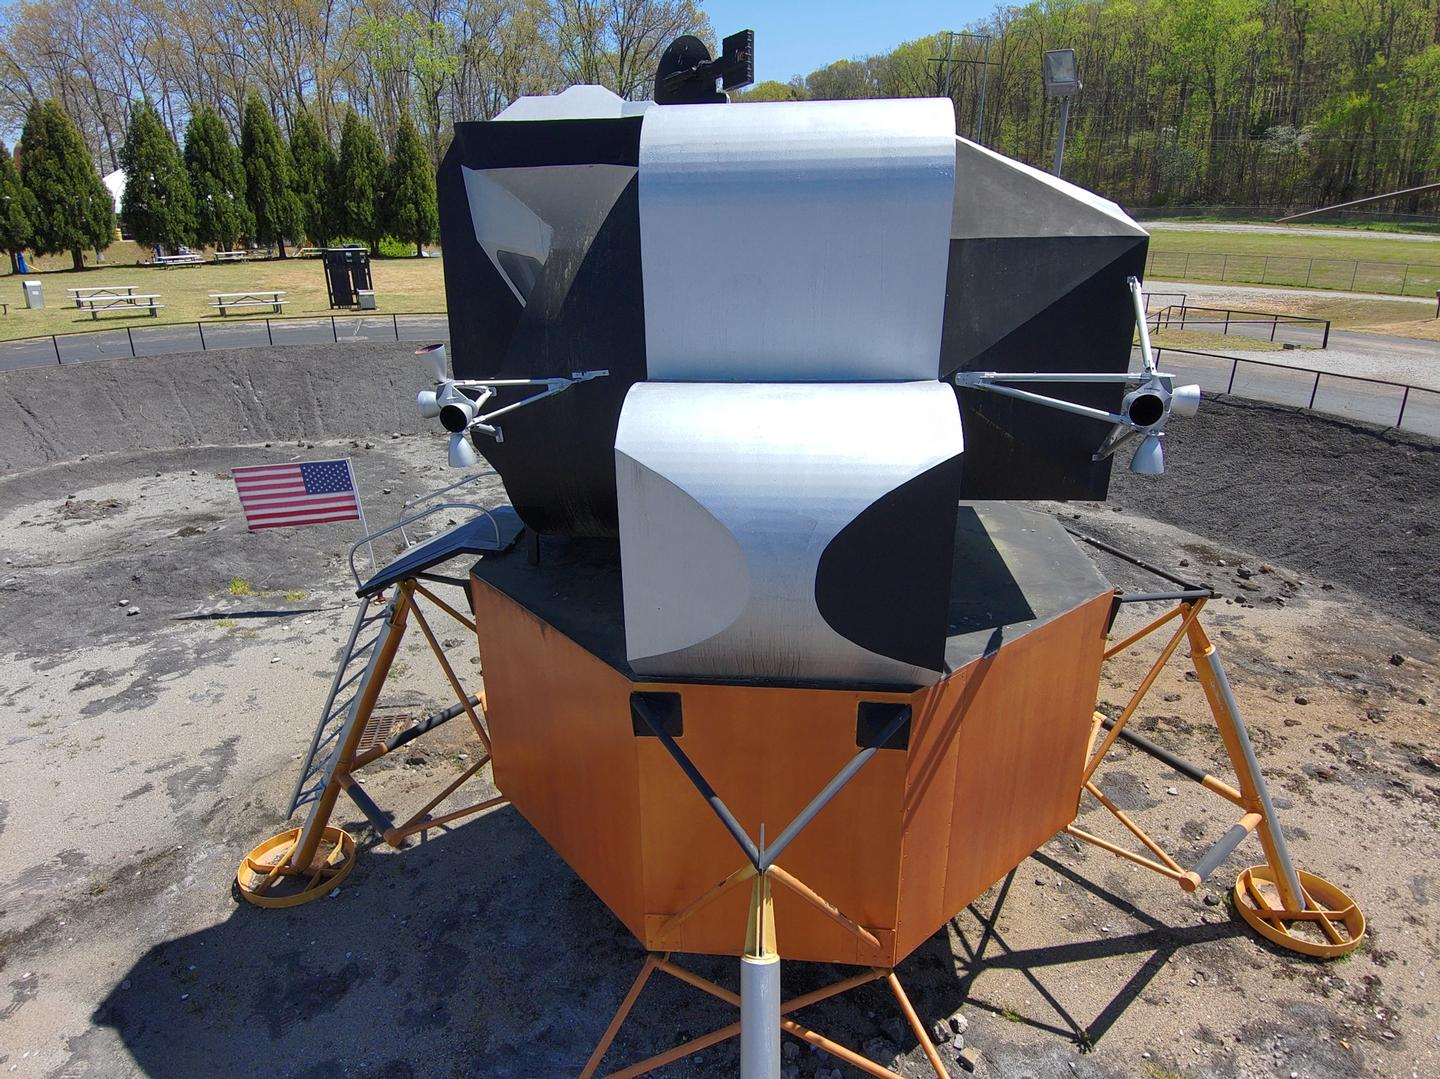 A Drone Photo of the Lunar Lander at the U.S. Space & Rocket Center